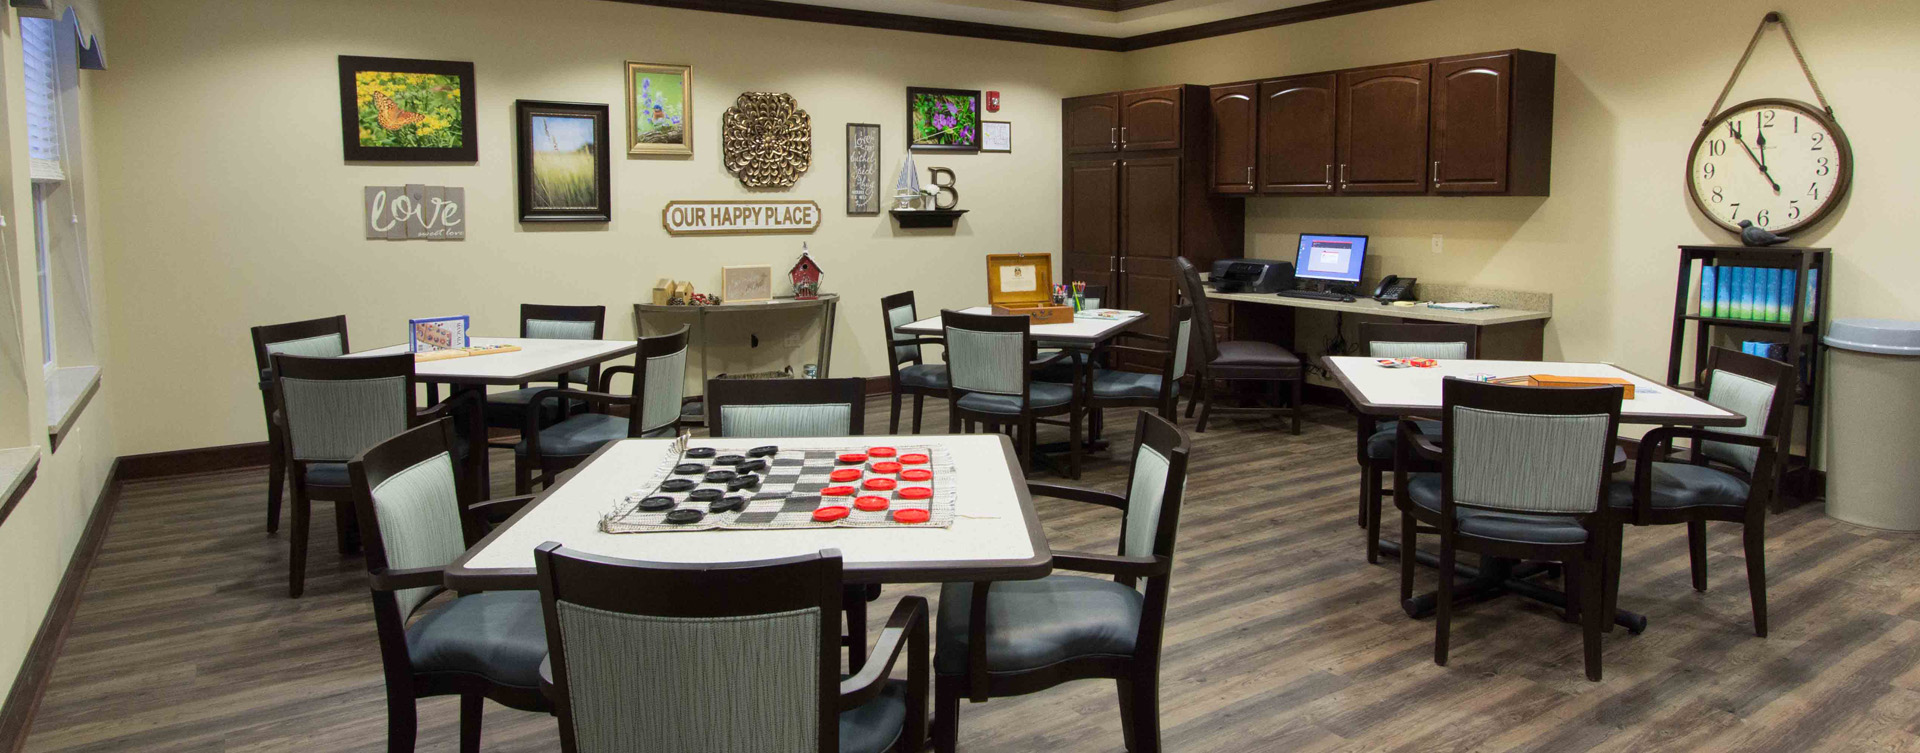 Enjoy a good card game with friends in the activity room at Bickford of Gurnee